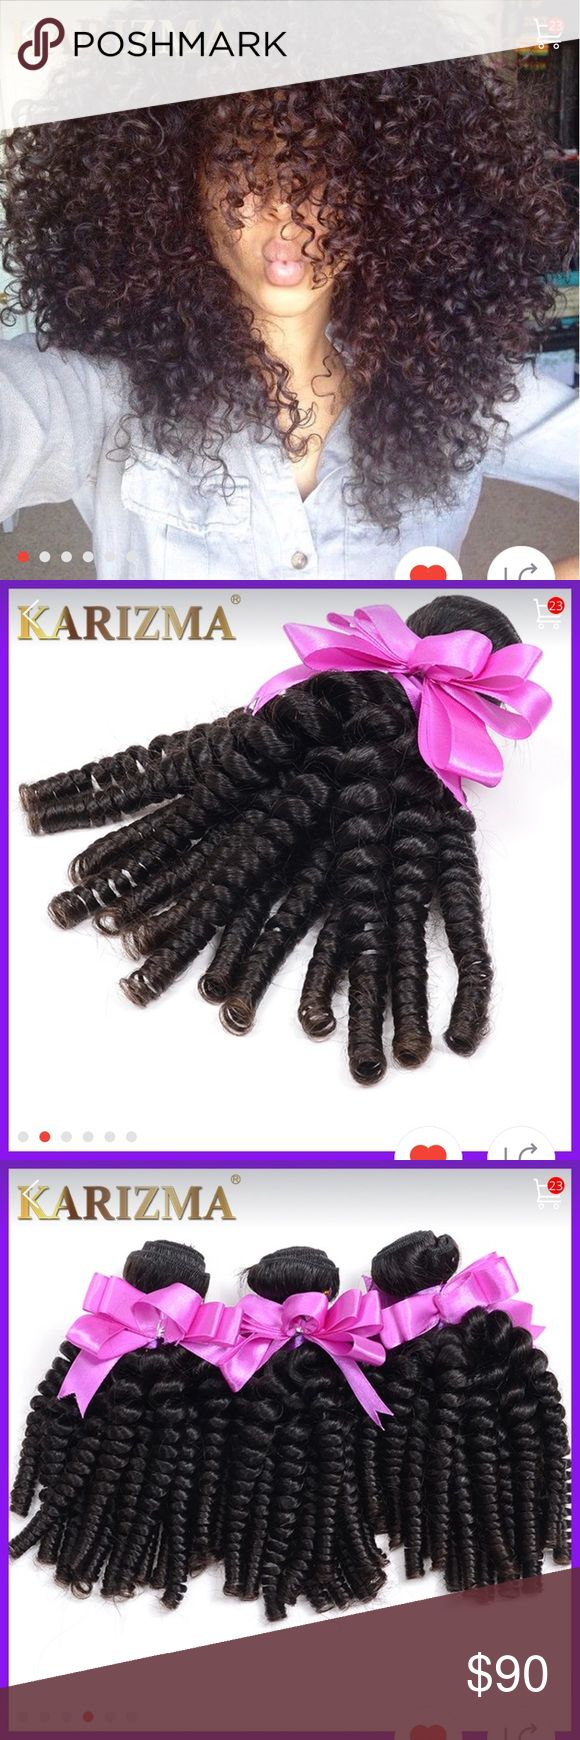 Brazilian Kinky Curly Virgin Hair 3 Bundles Afro Brazilian Kinky Curly Virgin…